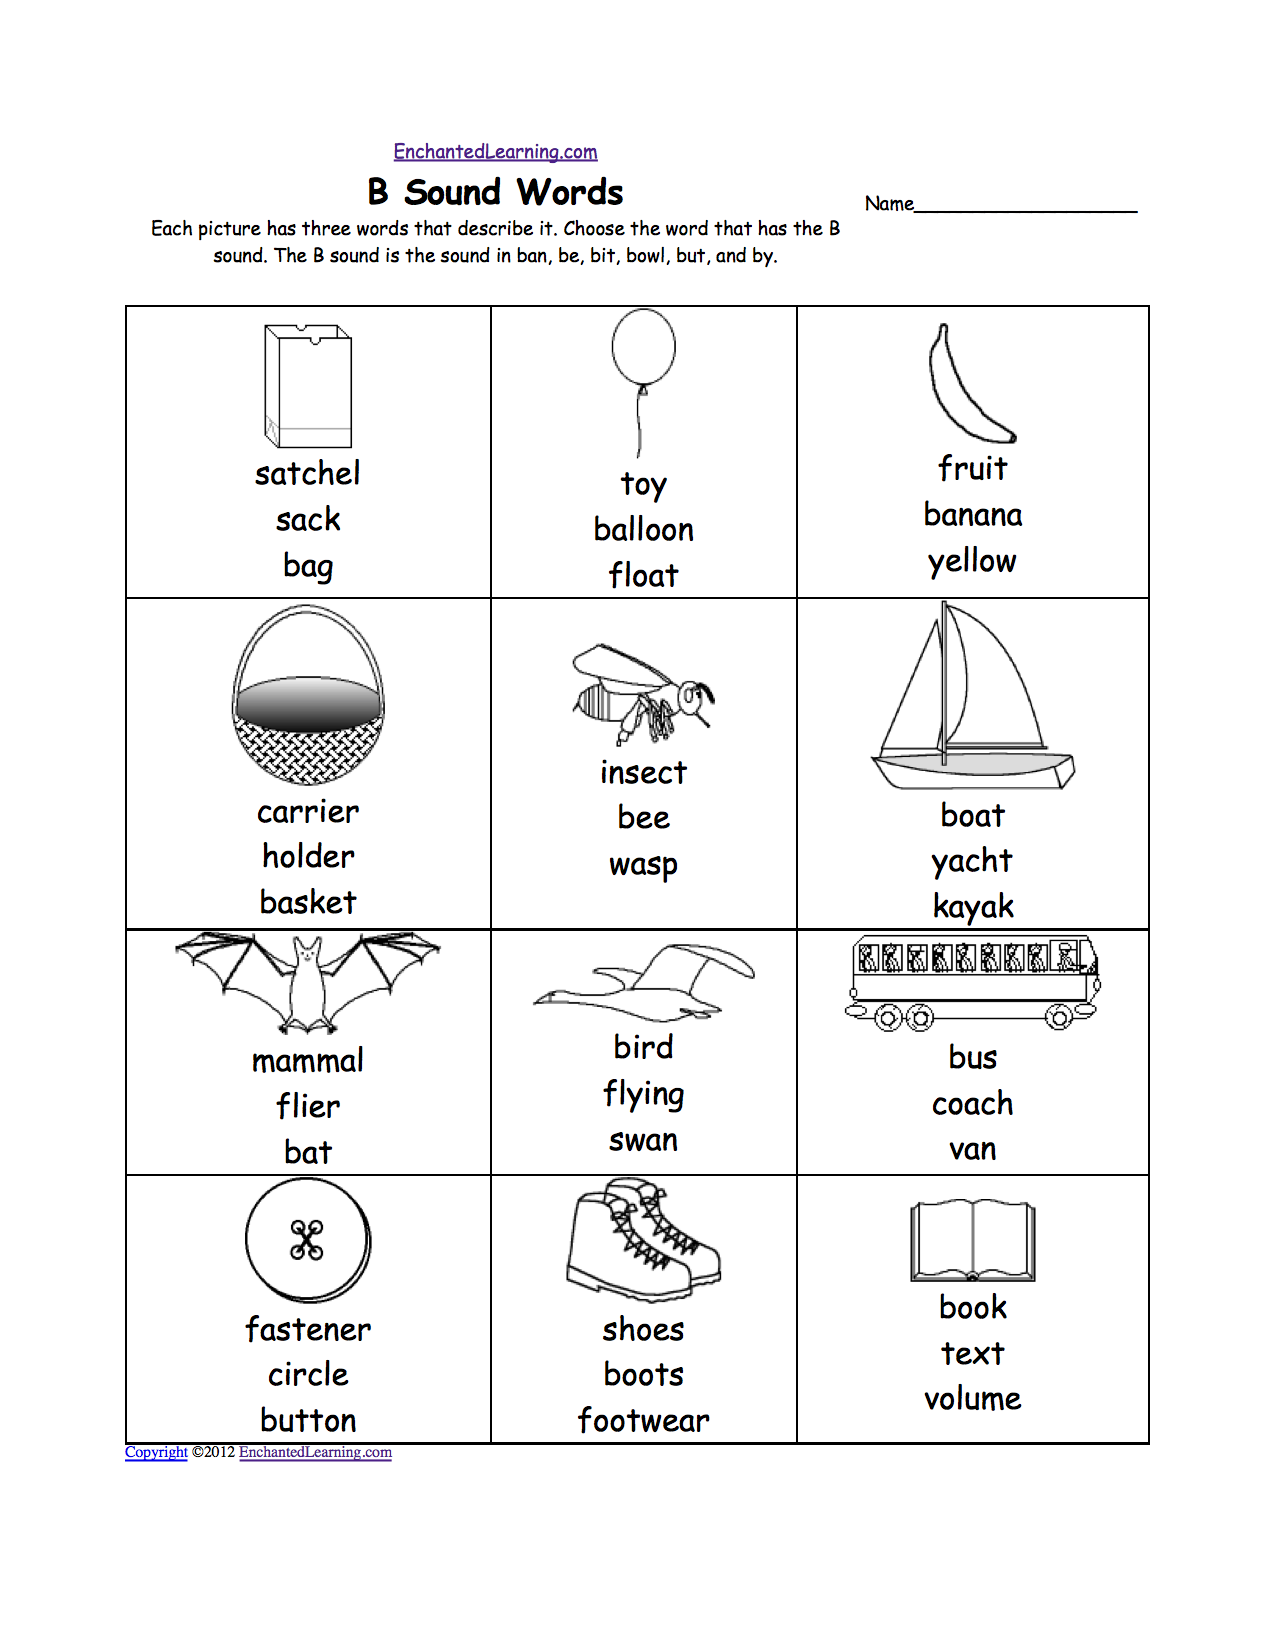 Weirdmailus  Splendid Phonics Worksheets Multiple Choice Worksheets To Print  With Magnificent Quotbquot Sound Phonics Worksheet Multiple Choice Each Picture Has Three Words That Describe It Choose The Word That Has A Quotbquot Sound The Quotbquot Sound Is The Sound  With Delectable Irregular Nouns Worksheet Nd Grade Also Properties Of D And D Shapes Worksheets In Addition Allows Users To Save Worksheets In Html Format And Printable Math Worksheets For Second Grade As Well As Animals And Their Babies Worksheet Additionally Units Conversion Worksheet From Enchantedlearningcom With Weirdmailus  Magnificent Phonics Worksheets Multiple Choice Worksheets To Print  With Delectable Quotbquot Sound Phonics Worksheet Multiple Choice Each Picture Has Three Words That Describe It Choose The Word That Has A Quotbquot Sound The Quotbquot Sound Is The Sound  And Splendid Irregular Nouns Worksheet Nd Grade Also Properties Of D And D Shapes Worksheets In Addition Allows Users To Save Worksheets In Html Format From Enchantedlearningcom